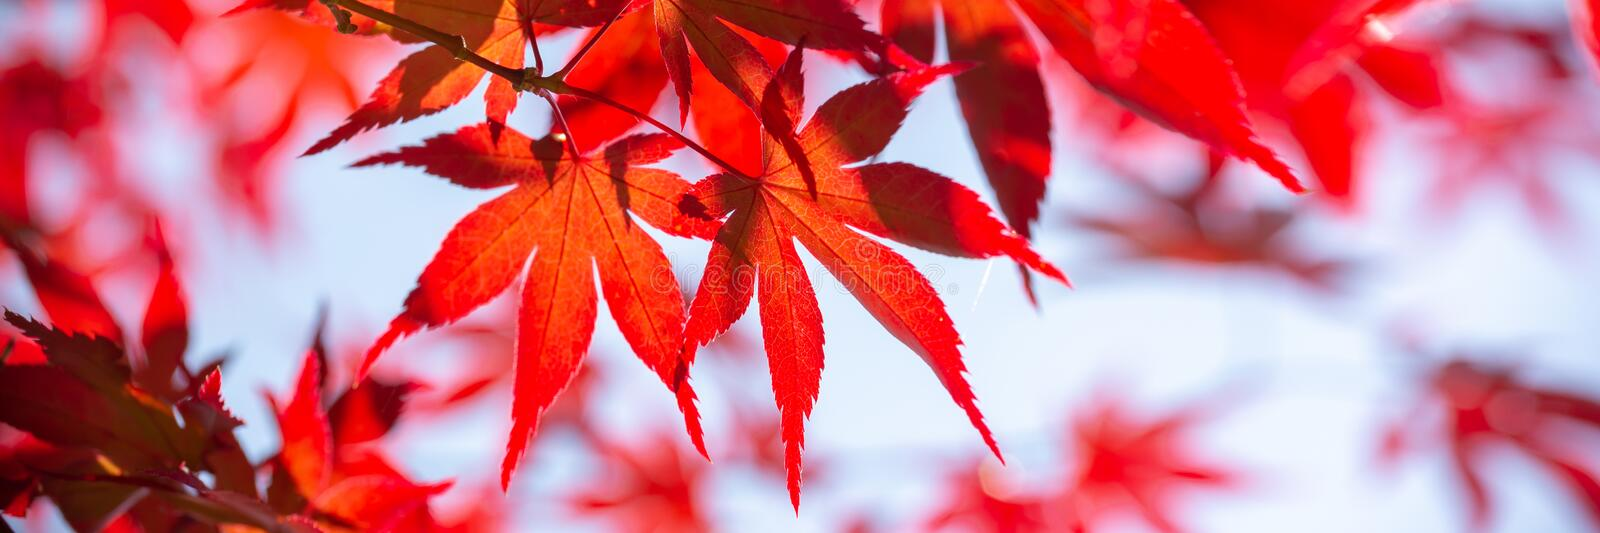 Red maple leaves panoramic background autumn concept royalty free stock image